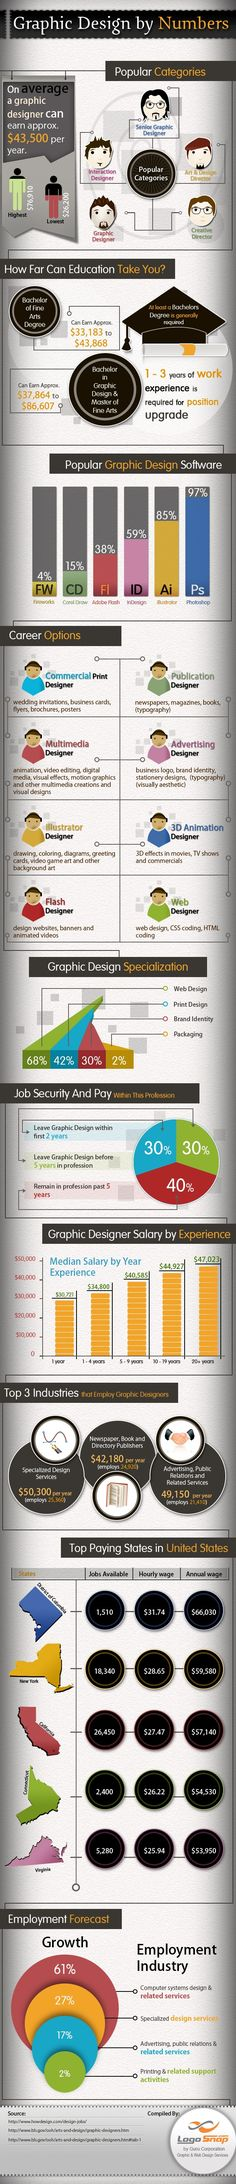 #GraphicDesign by the Numbers